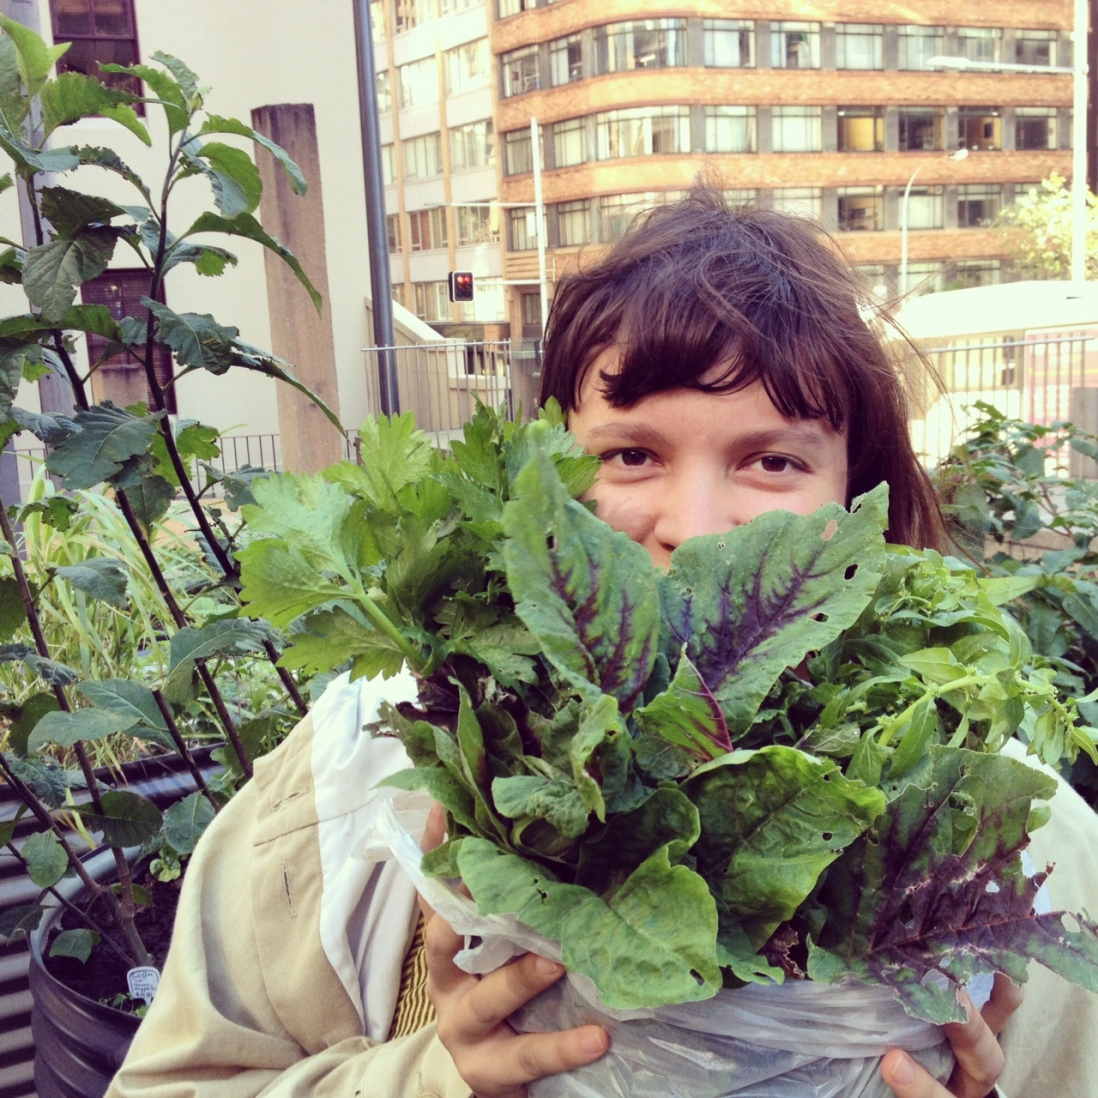 Woman harvesting the plants from the Market Garden